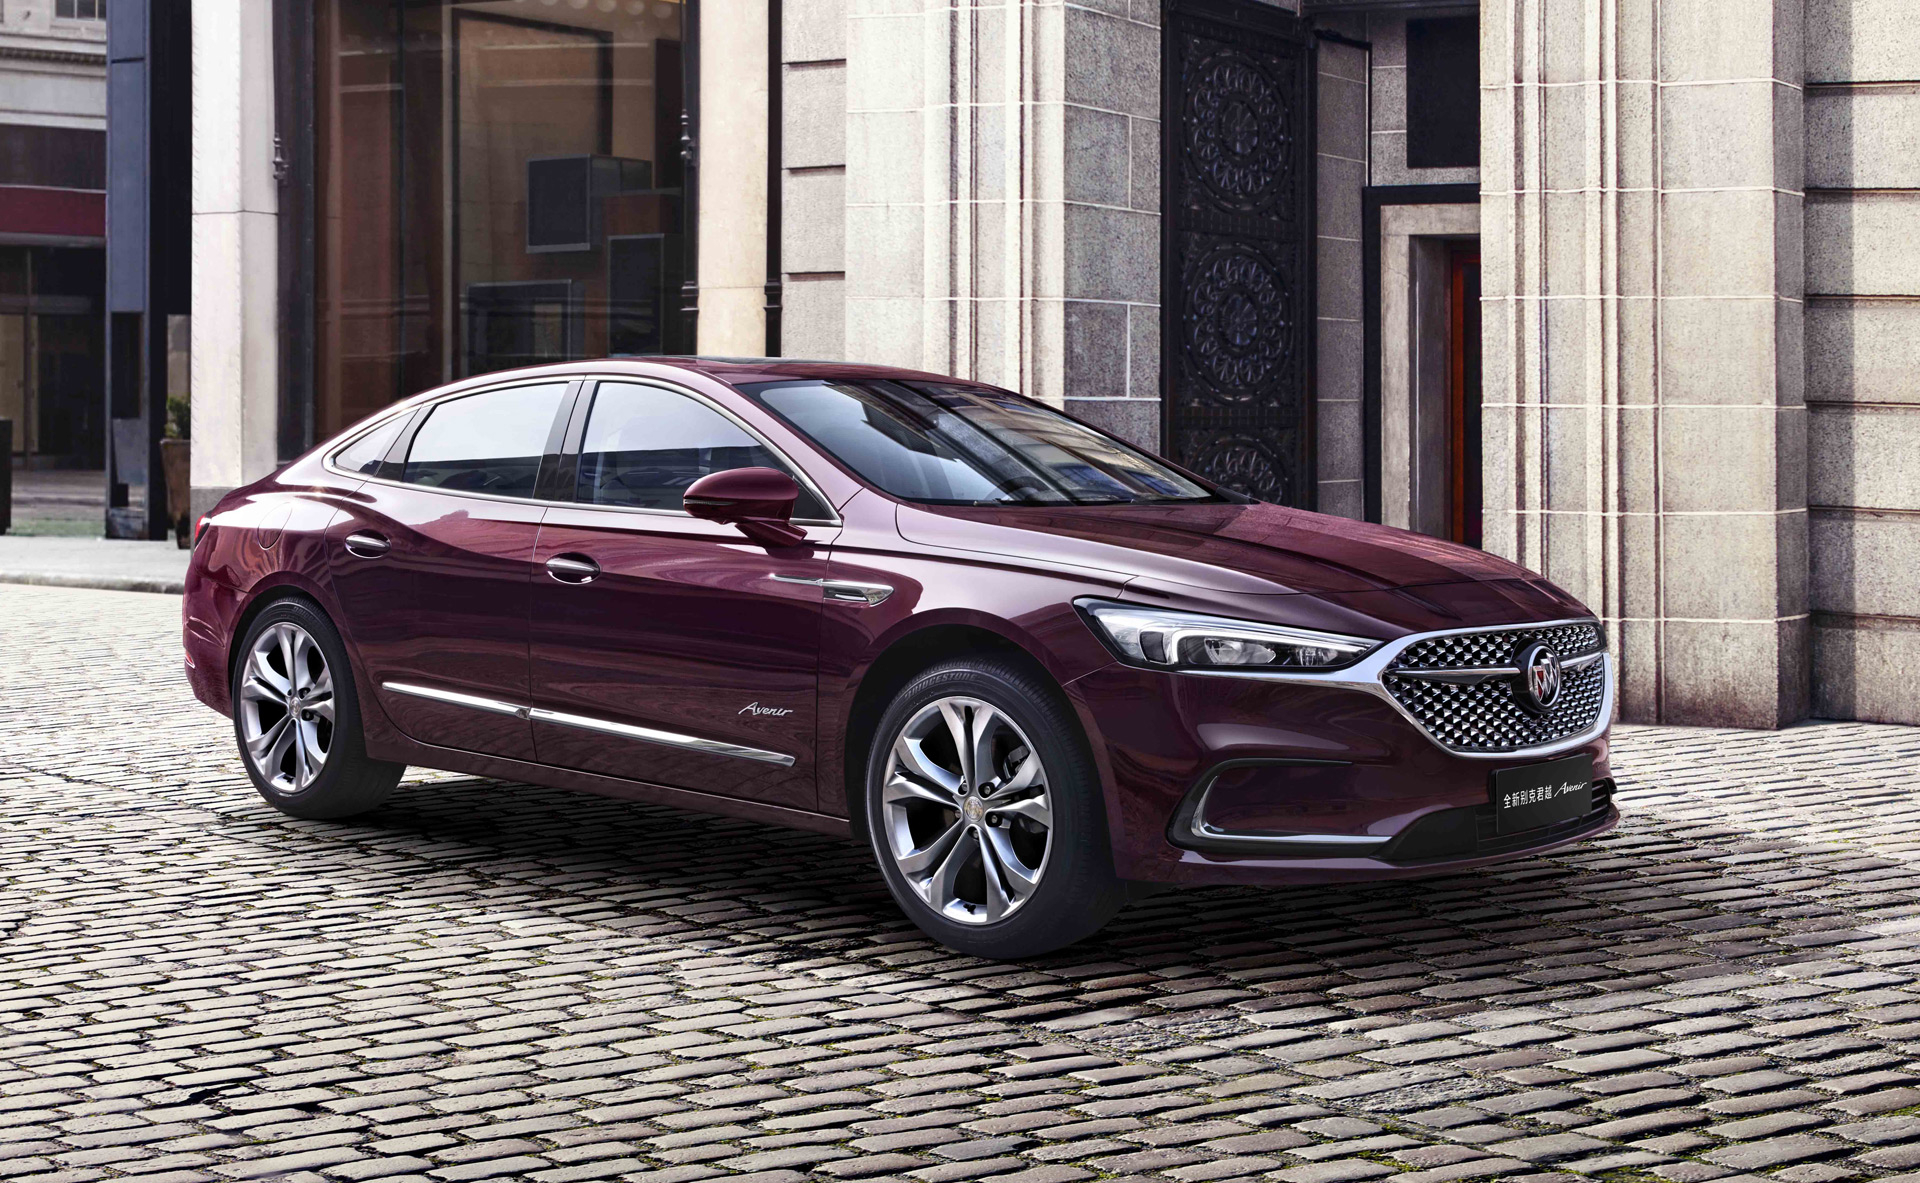 2020 Buick Lacrosse Made Handsome Just As It's Dropped In Us Price Of A New 2022 Buick Lacrosse